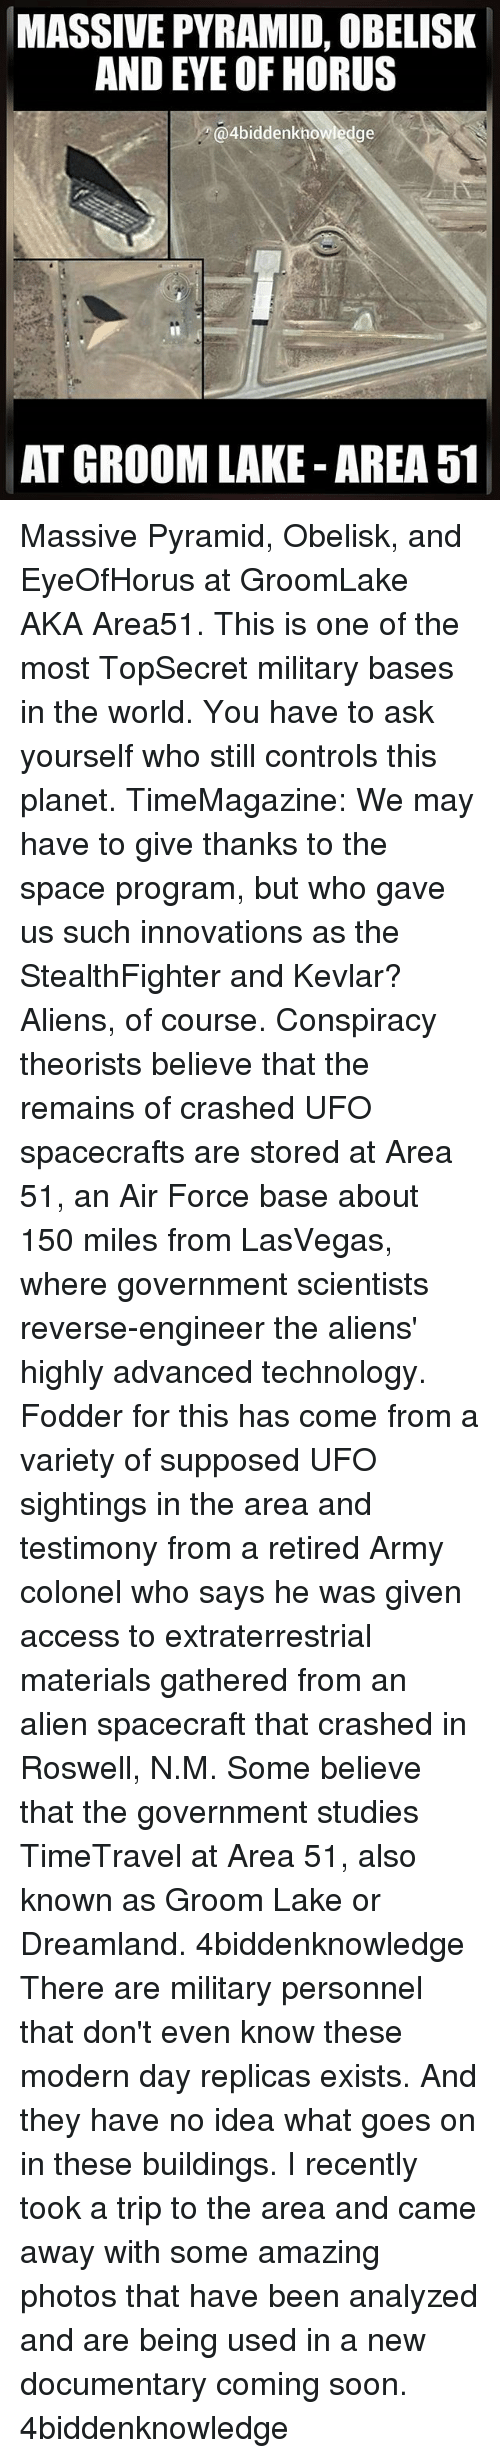 Conspiracy Theorists: MASSIVE PYRAMID, OBELISK  AND EYE OF HORUS  @4biddenknowledge  AT GROOM LAKE AREA 51 Massive Pyramid, Obelisk, and EyeOfHorus at GroomLake AKA Area51. This is one of the most TopSecret military bases in the world. You have to ask yourself who still controls this planet. TimeMagazine: We may have to give thanks to the space program, but who gave us such innovations as the StealthFighter and Kevlar? Aliens, of course. Conspiracy theorists believe that the remains of crashed UFO spacecrafts are stored at Area 51, an Air Force base about 150 miles from LasVegas, where government scientists reverse-engineer the aliens' highly advanced technology. Fodder for this has come from a variety of supposed UFO sightings in the area and testimony from a retired Army colonel who says he was given access to extraterrestrial materials gathered from an alien spacecraft that crashed in Roswell, N.M. Some believe that the government studies TimeTravel at Area 51, also known as Groom Lake or Dreamland. 4biddenknowledge There are military personnel that don't even know these modern day replicas exists. And they have no idea what goes on in these buildings. I recently took a trip to the area and came away with some amazing photos that have been analyzed and are being used in a new documentary coming soon. 4biddenknowledge